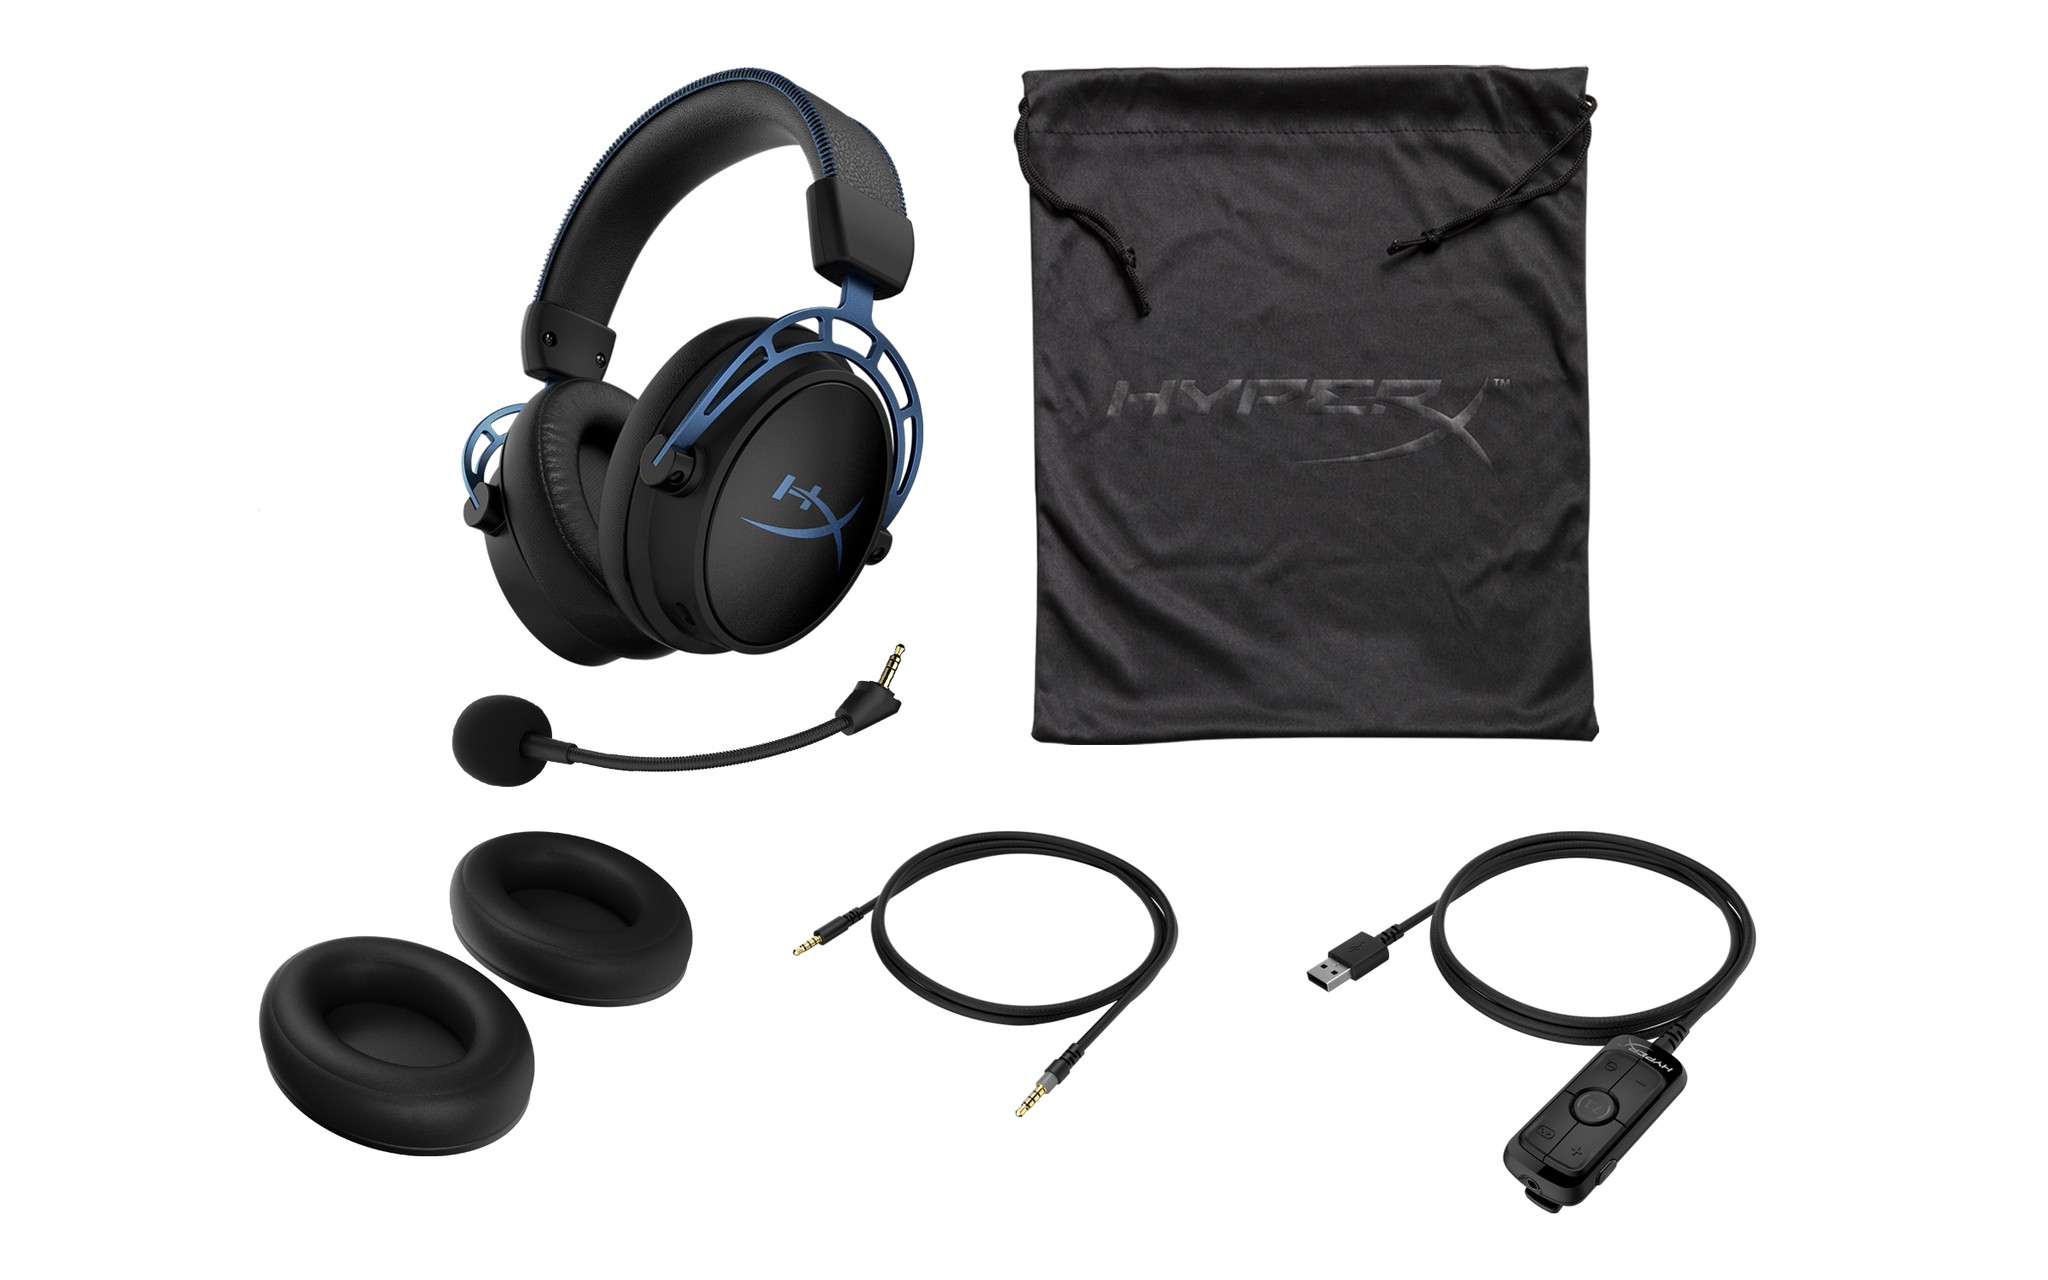 HyperX Cloud Alpha S 7 1 Gaming Headset Review - Alex Rowe